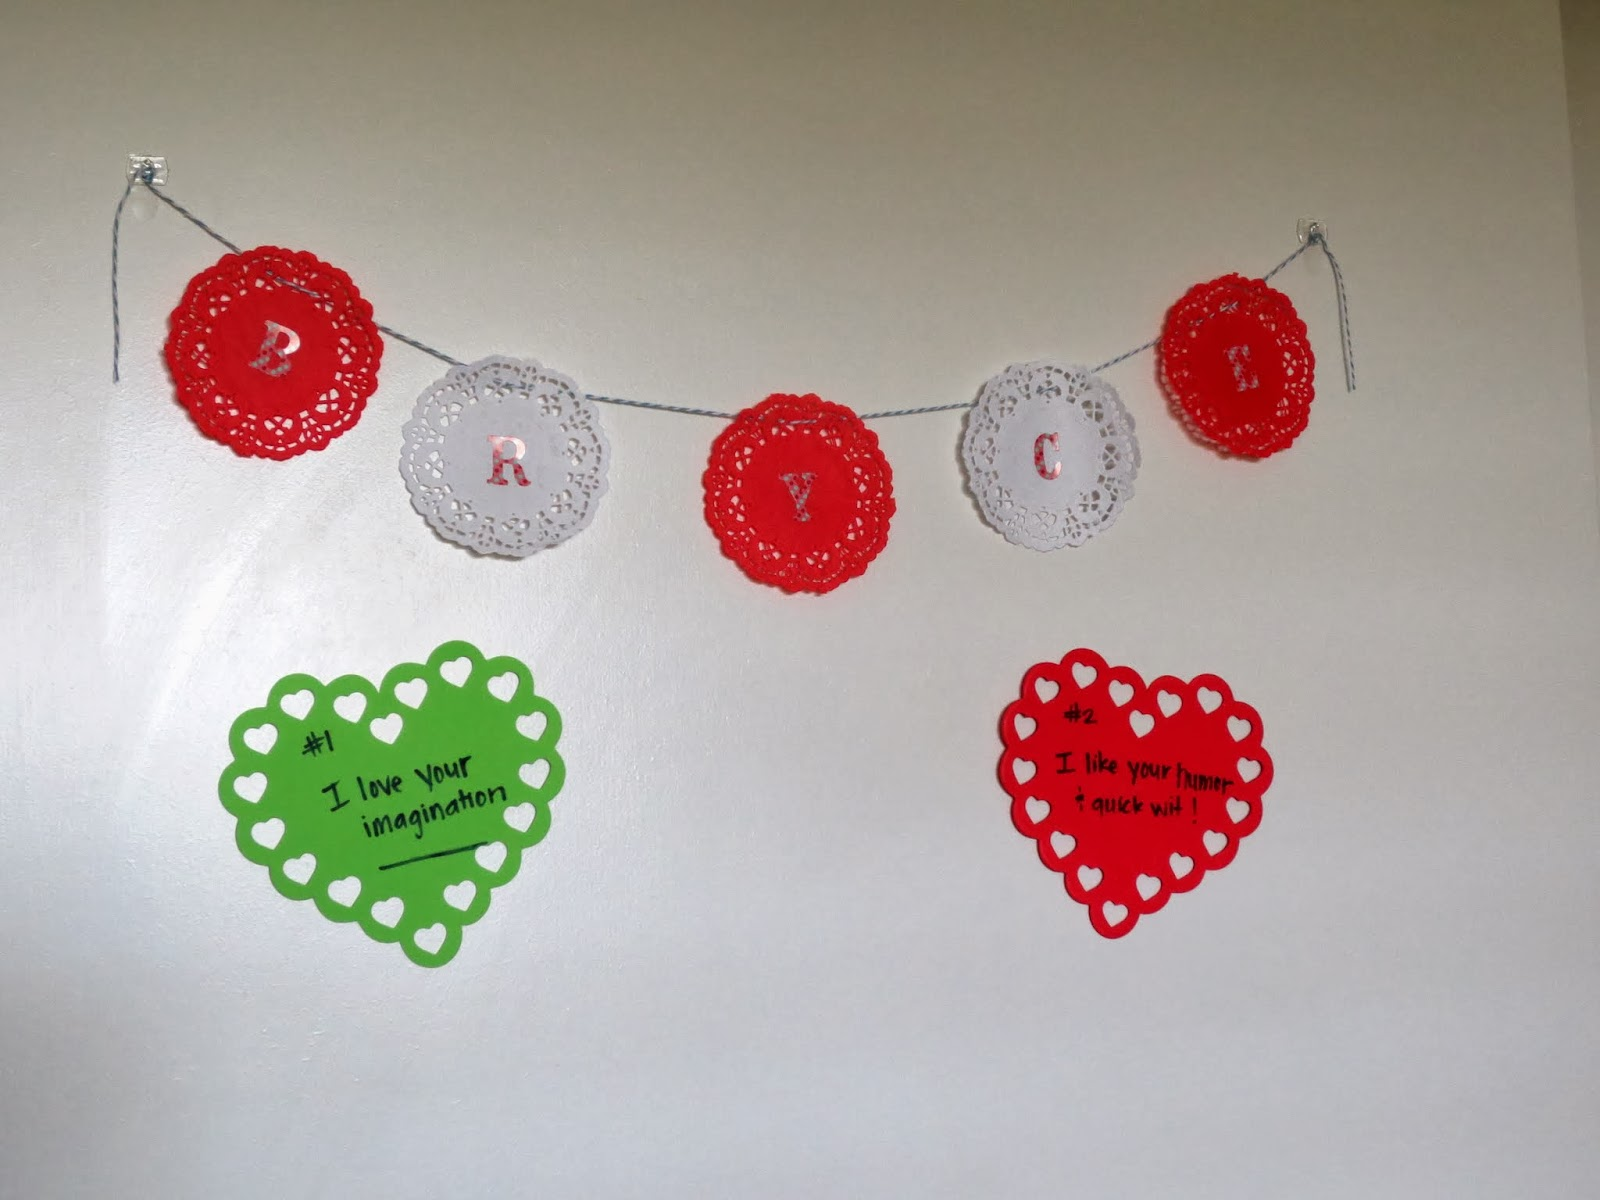 Command Wall Stickers A Happy Heart Shower Mehaffey Moments